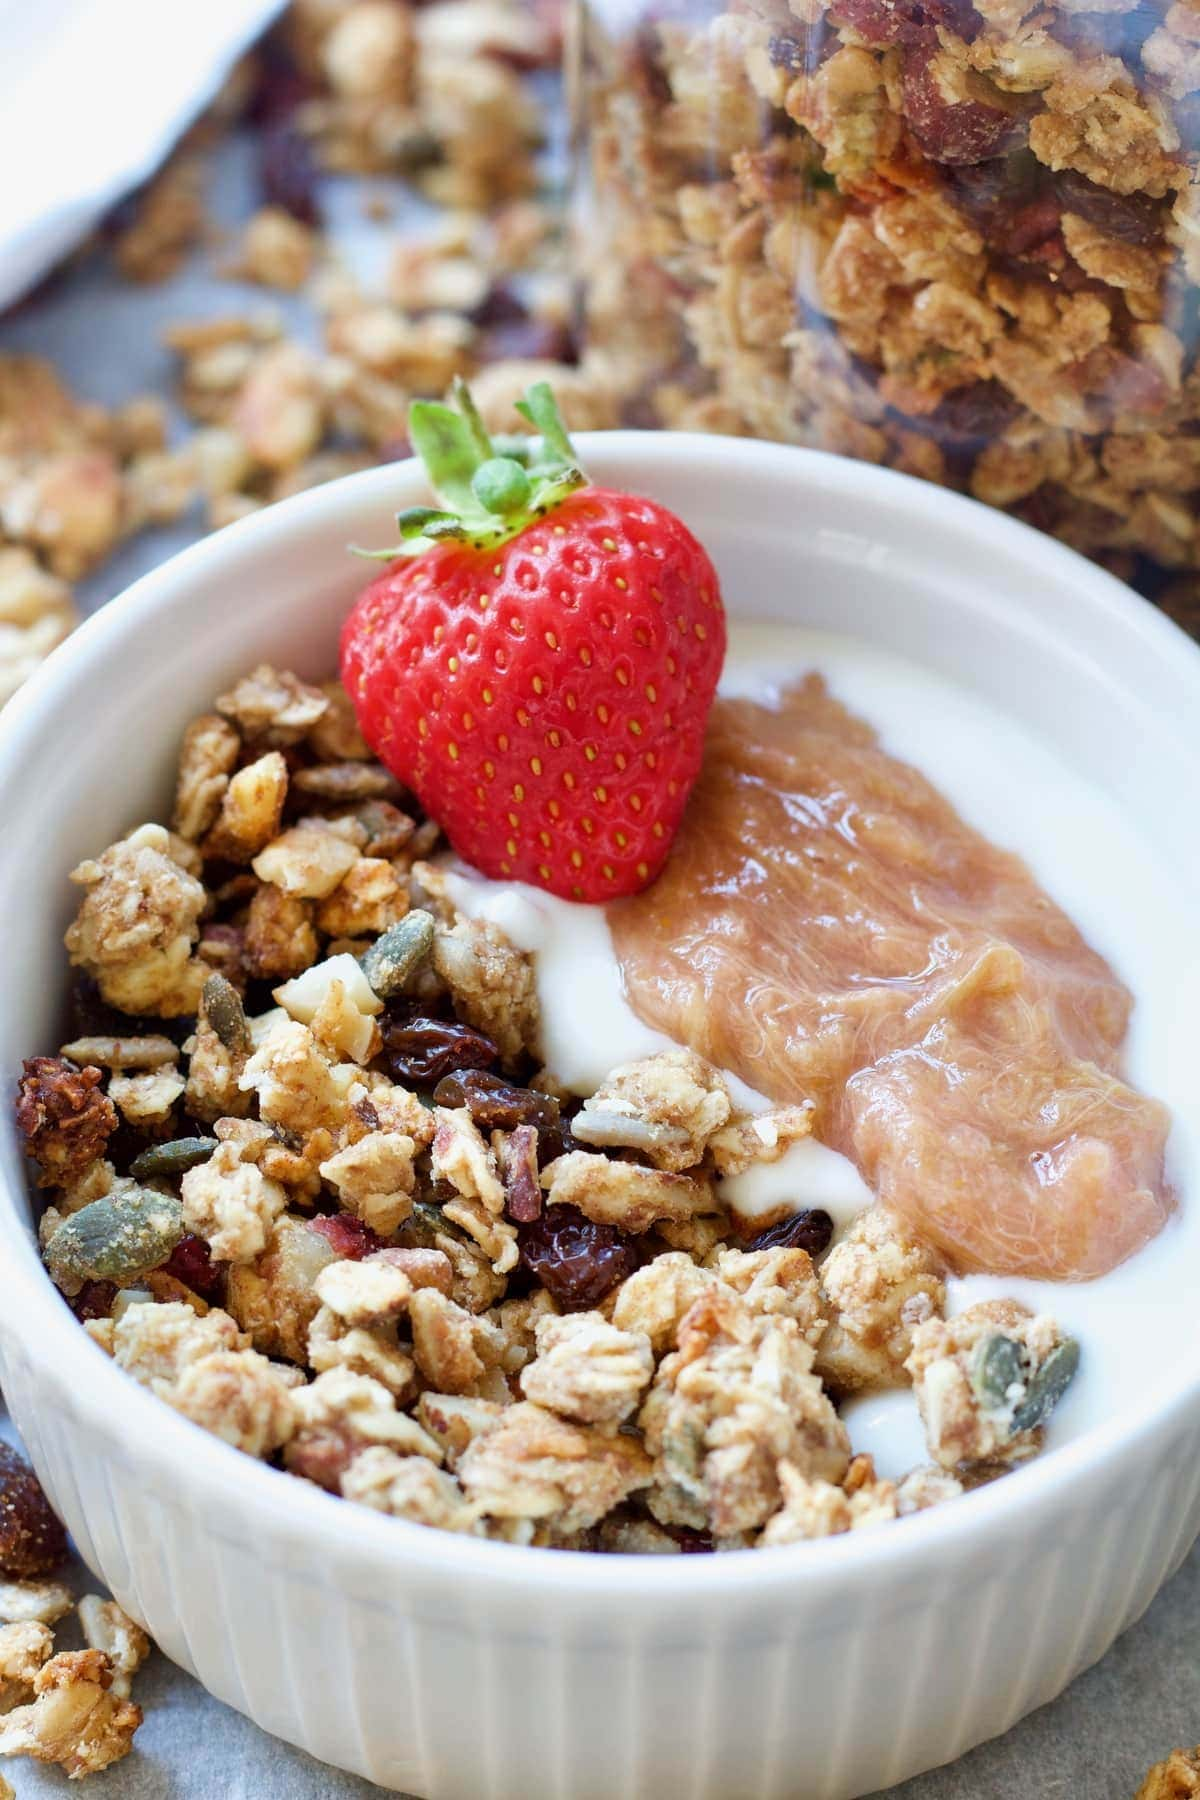 Serving suggestion with granola and yogurt.